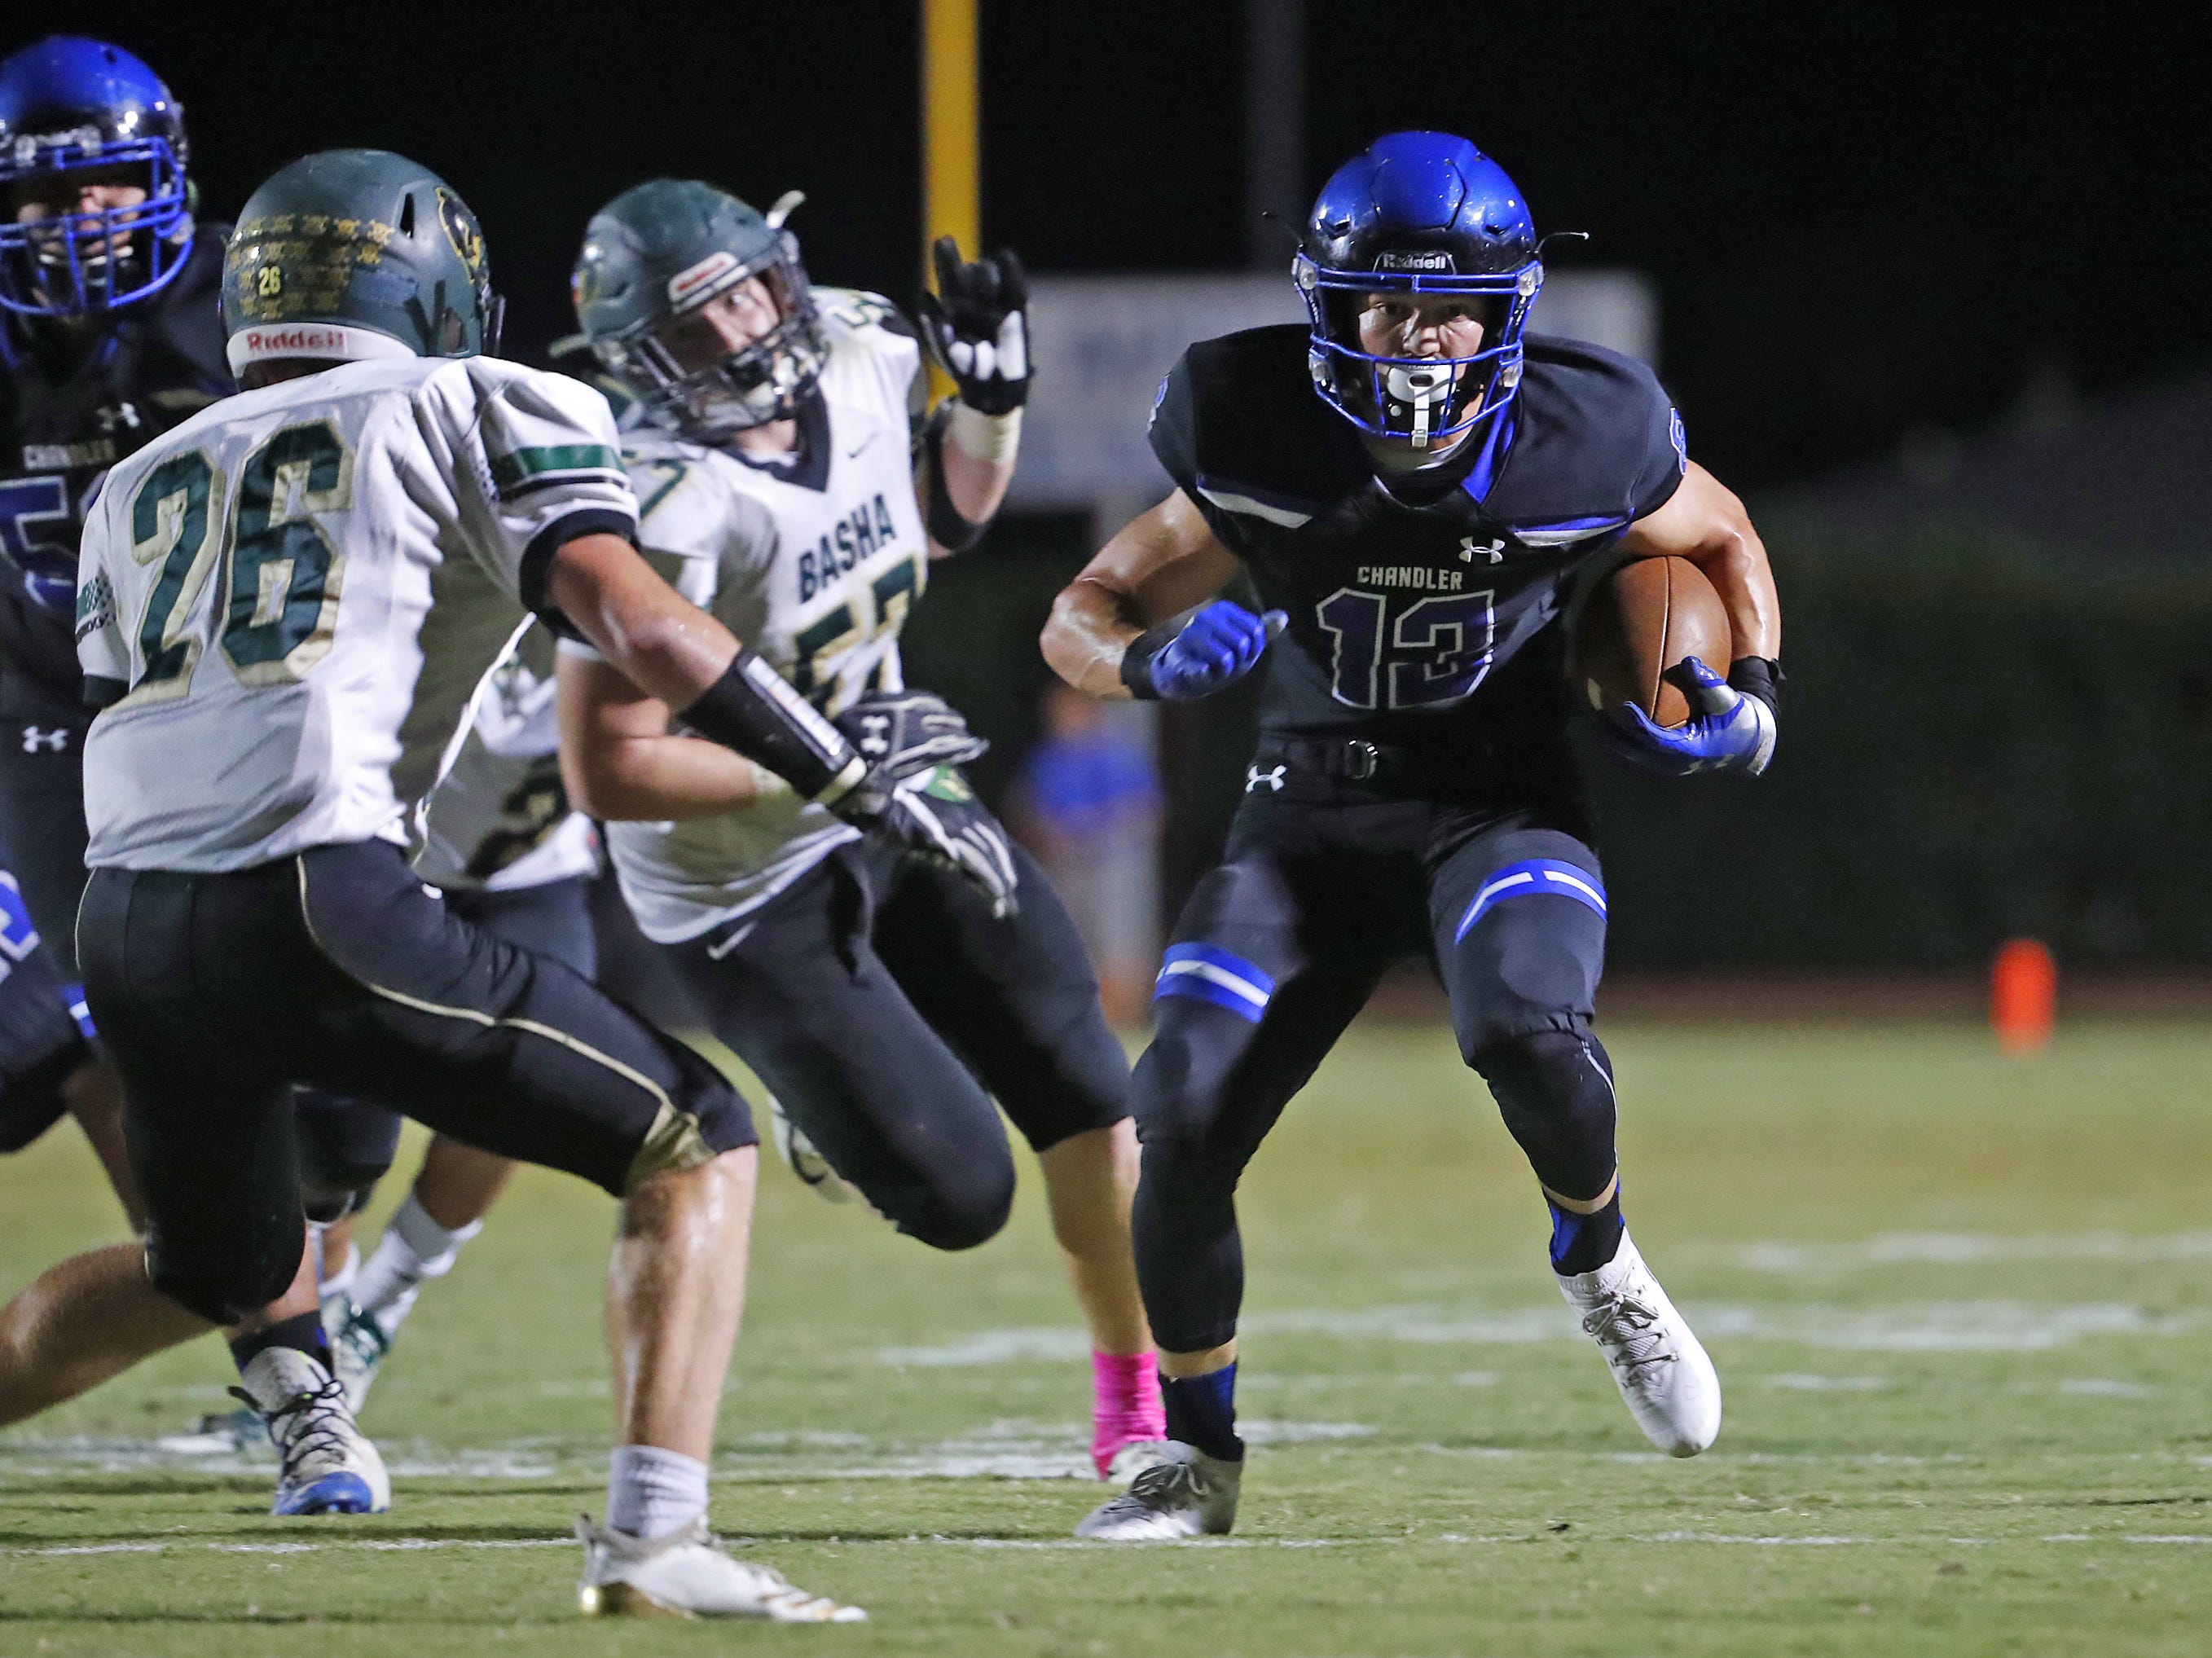 Chandler's Gunner Maldanado (13) runs down field against Basha at Chandler High School in Chandler, Ariz. on October 12, 2018.